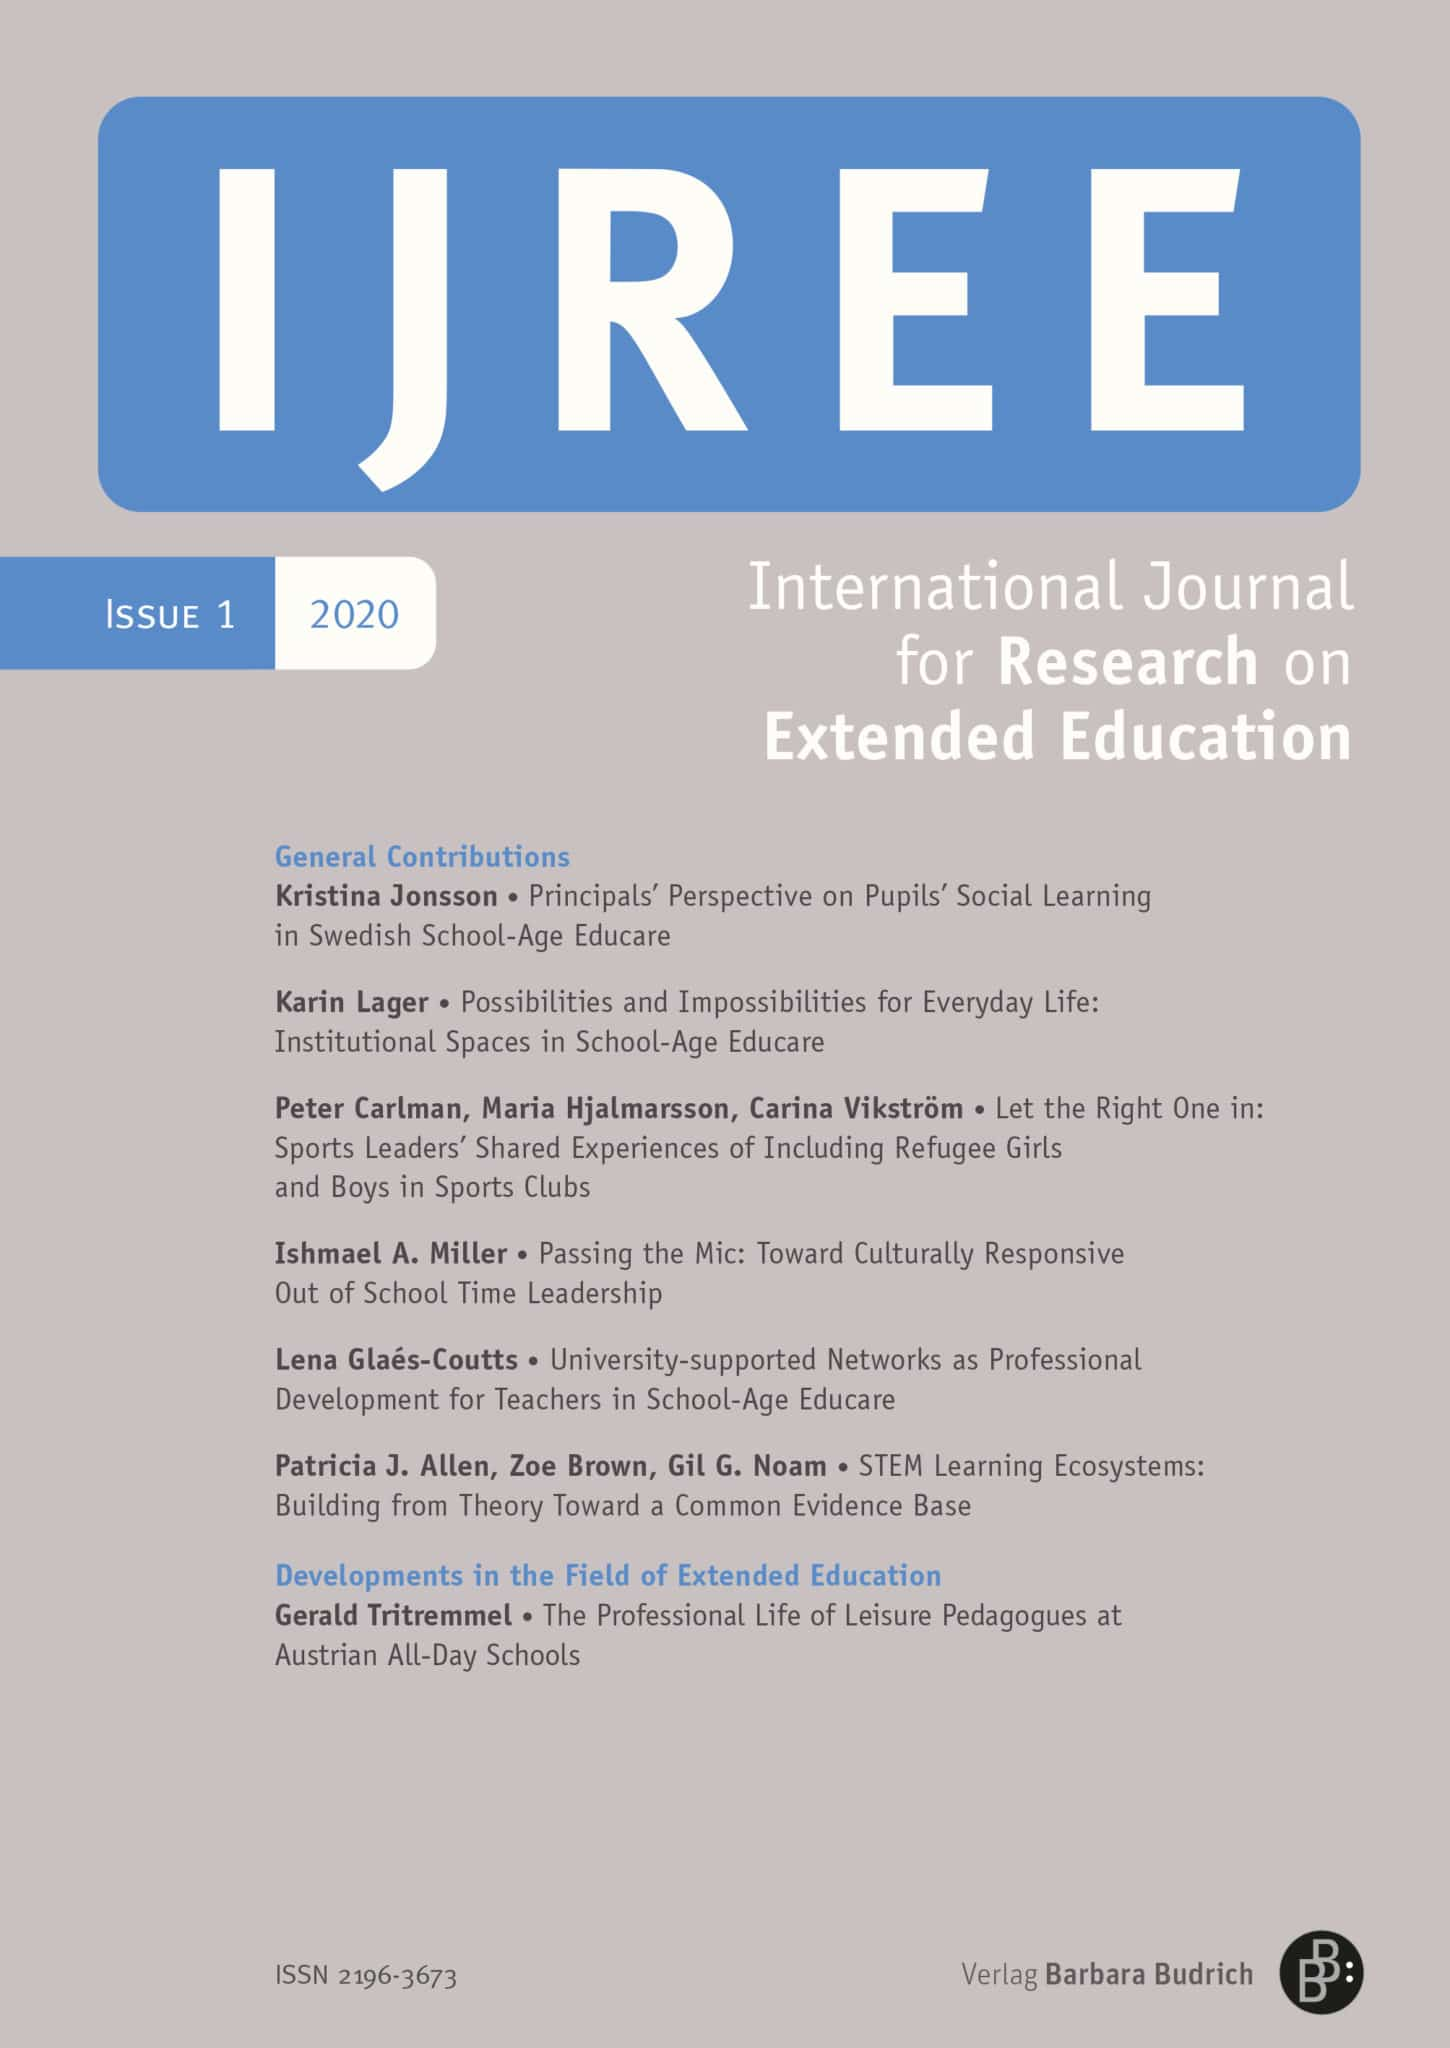 IJREE – International Journal for Research on Extended Education